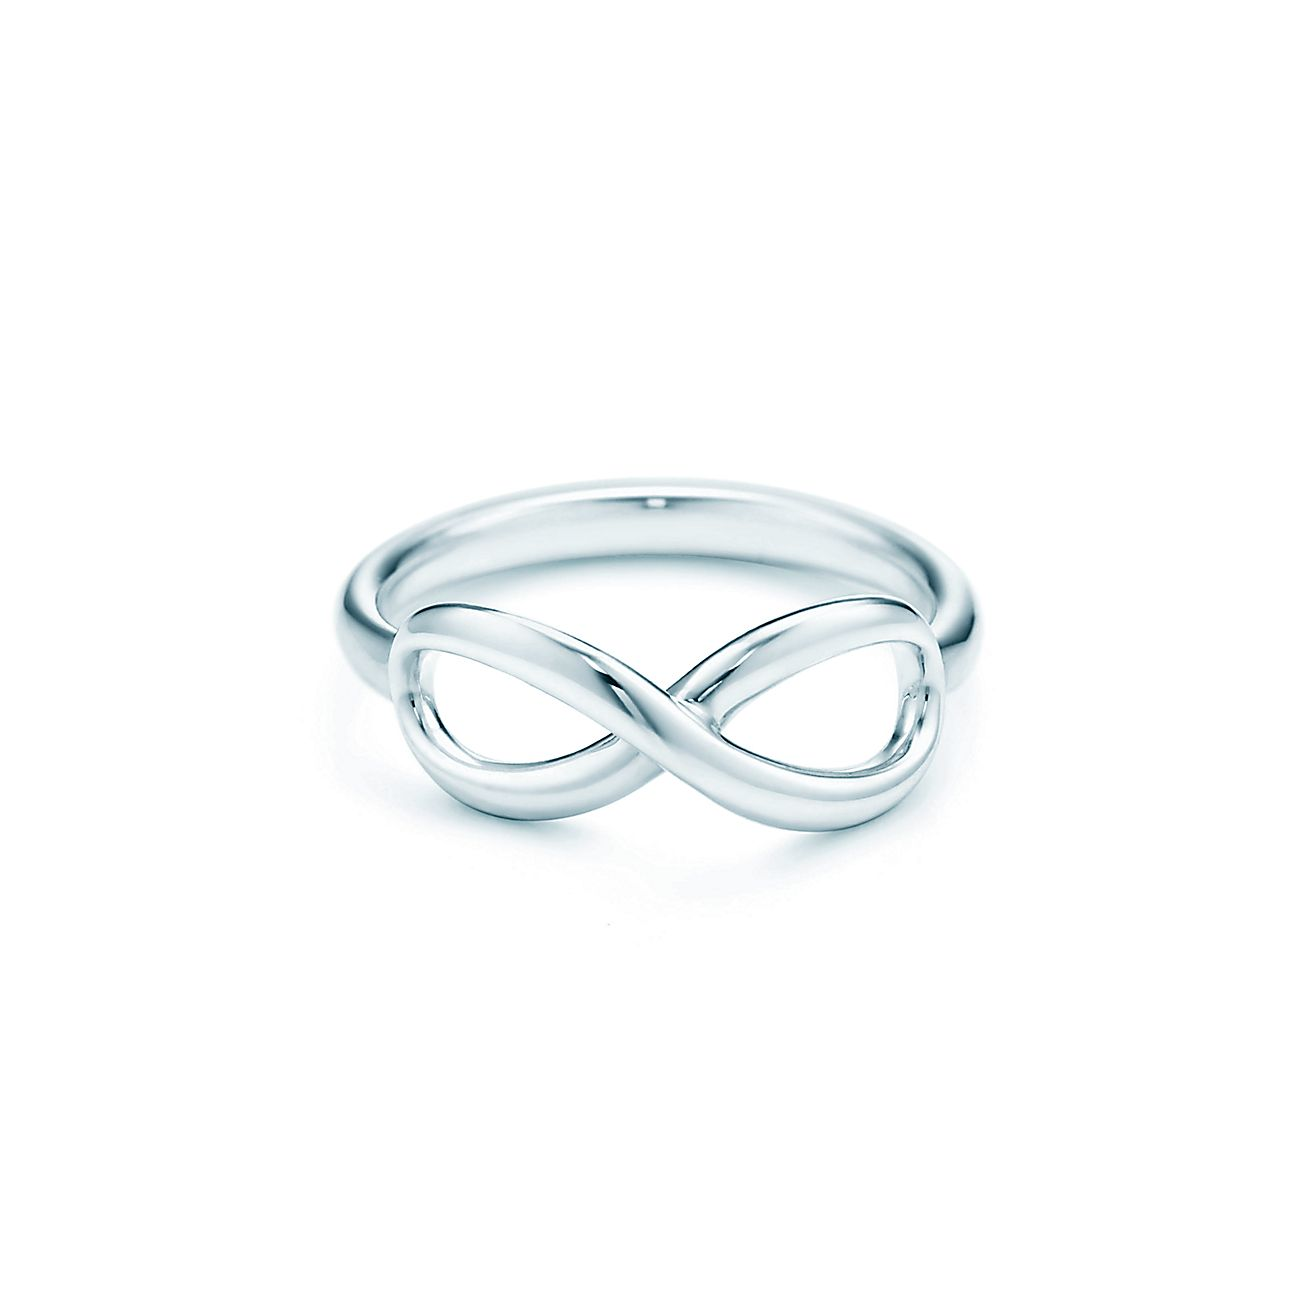 Jewelry Rings Tiffany Infinity Ring Grp06568 Tiffany Key Rings Return To